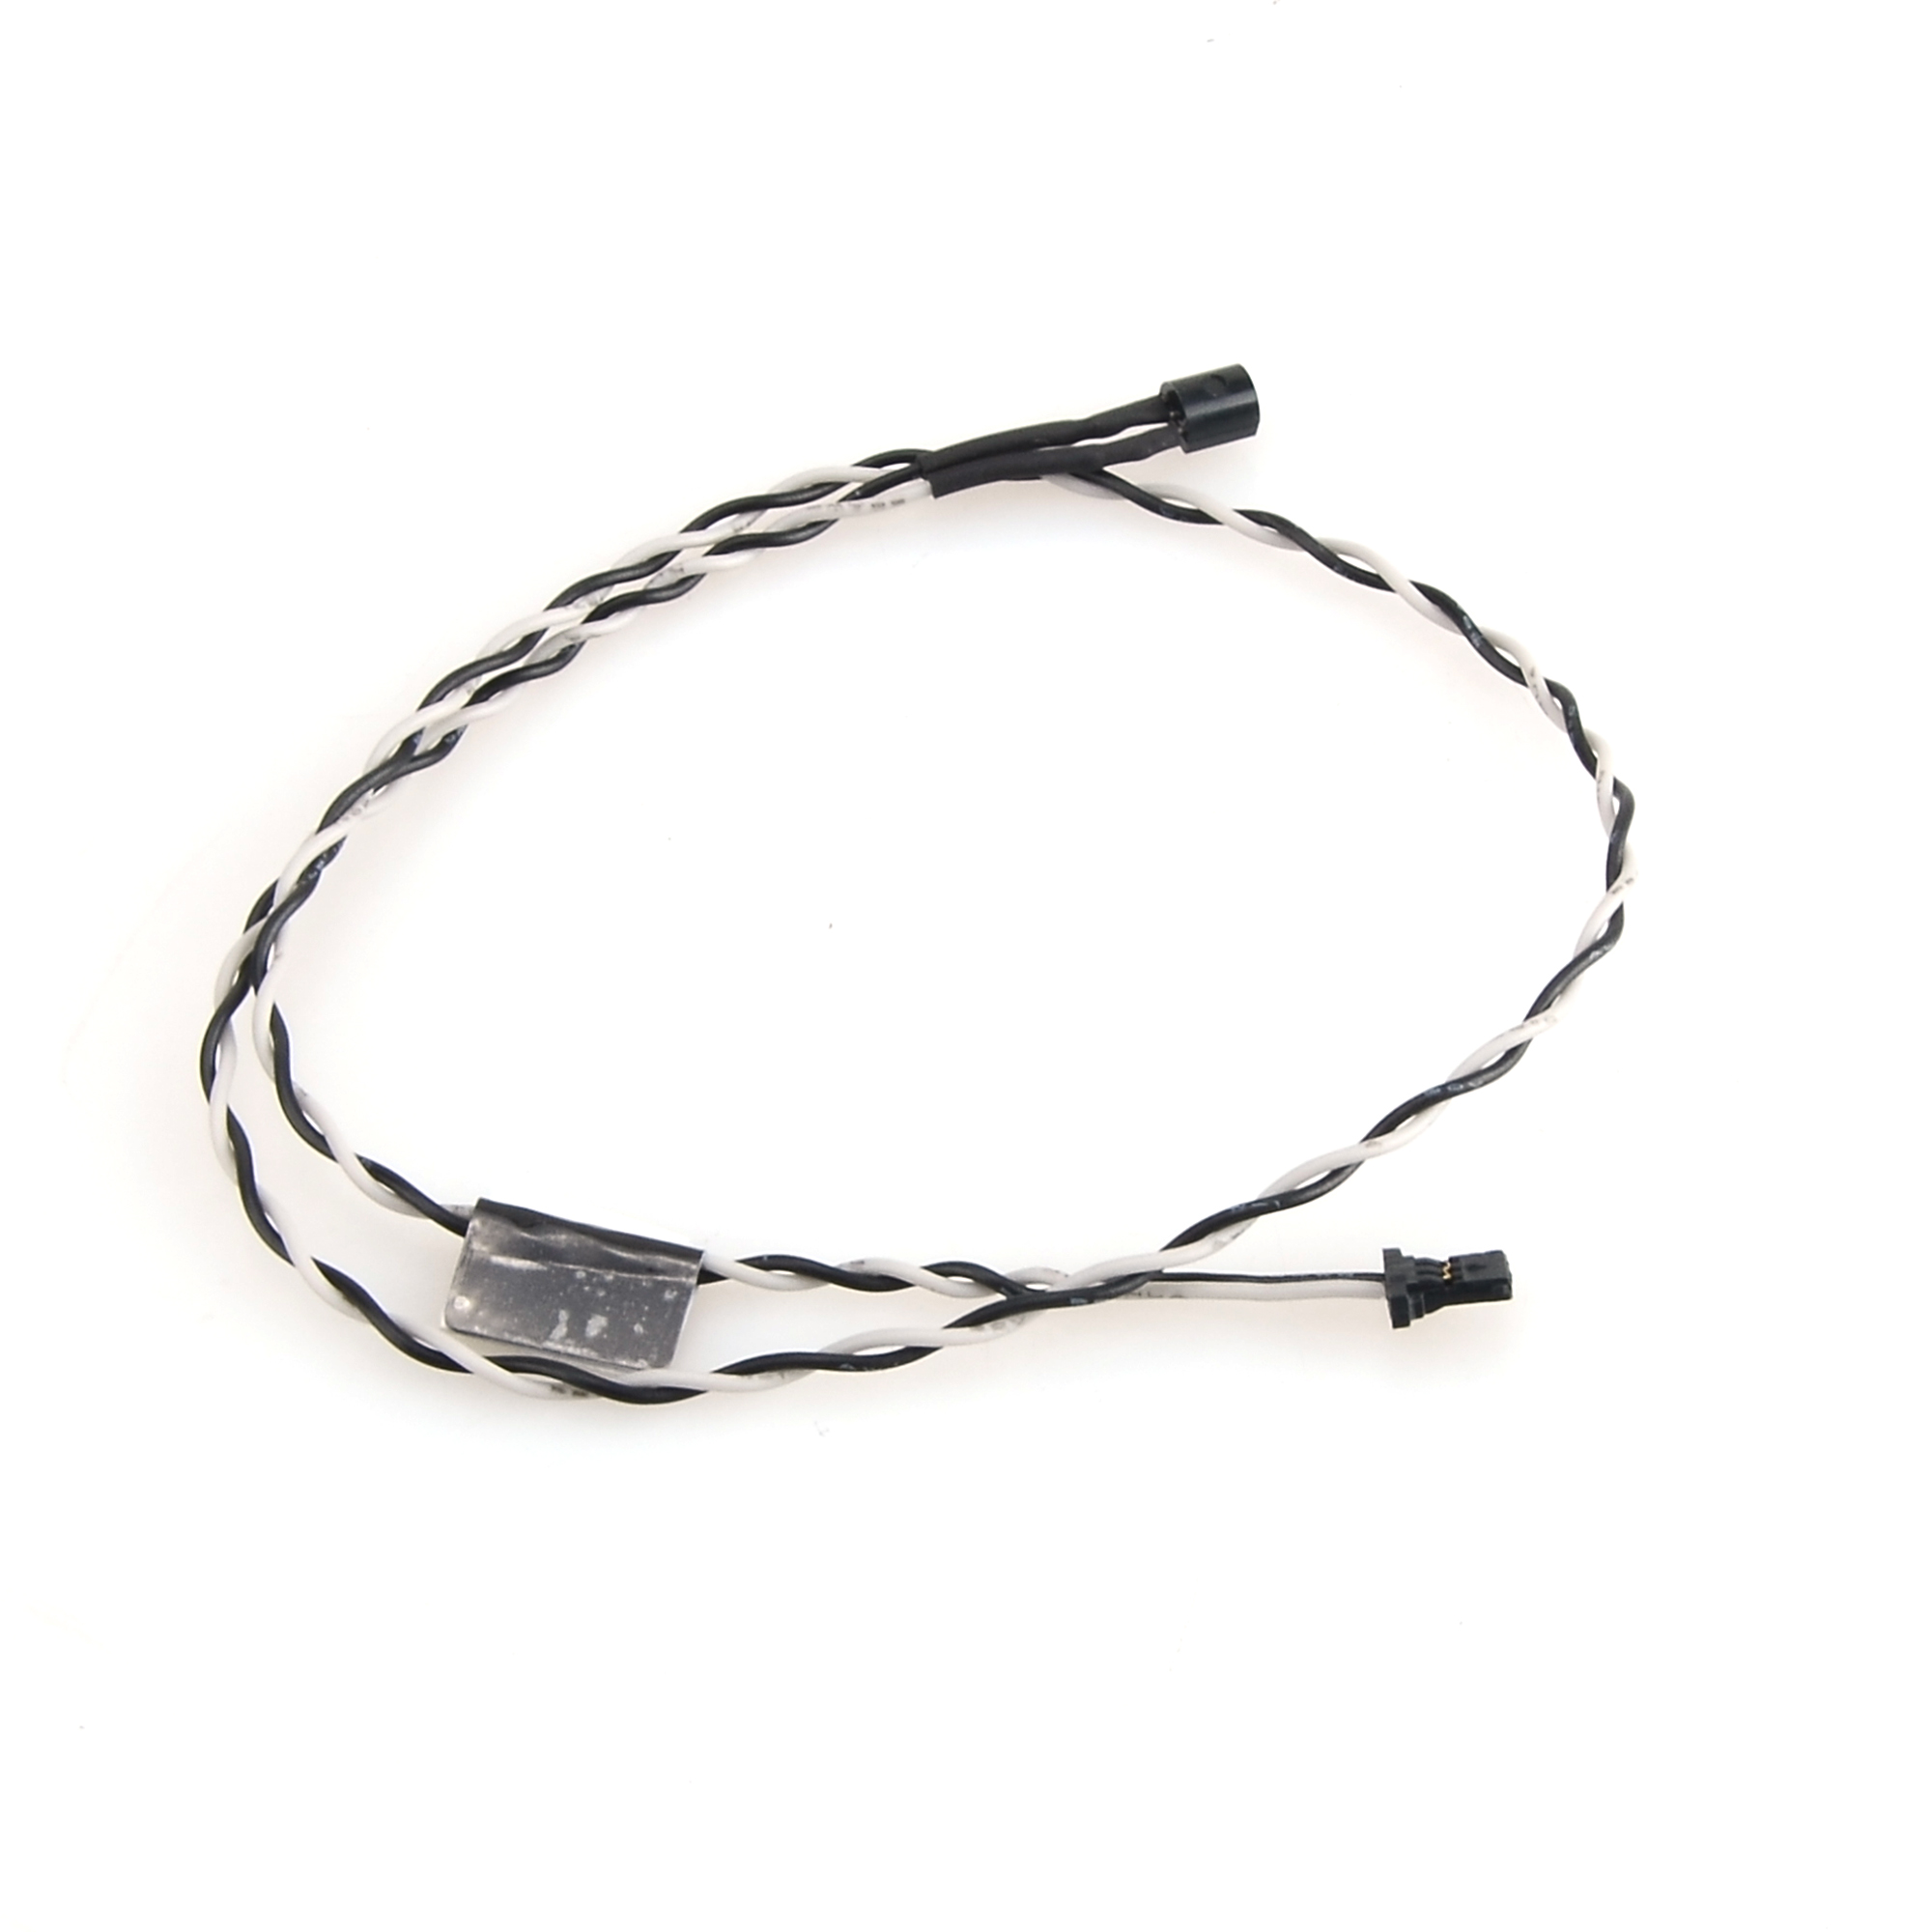 все цены на 8.28 SALE! Hard Drive Temperature Sensor Cable 593-1029-A For iMac 27